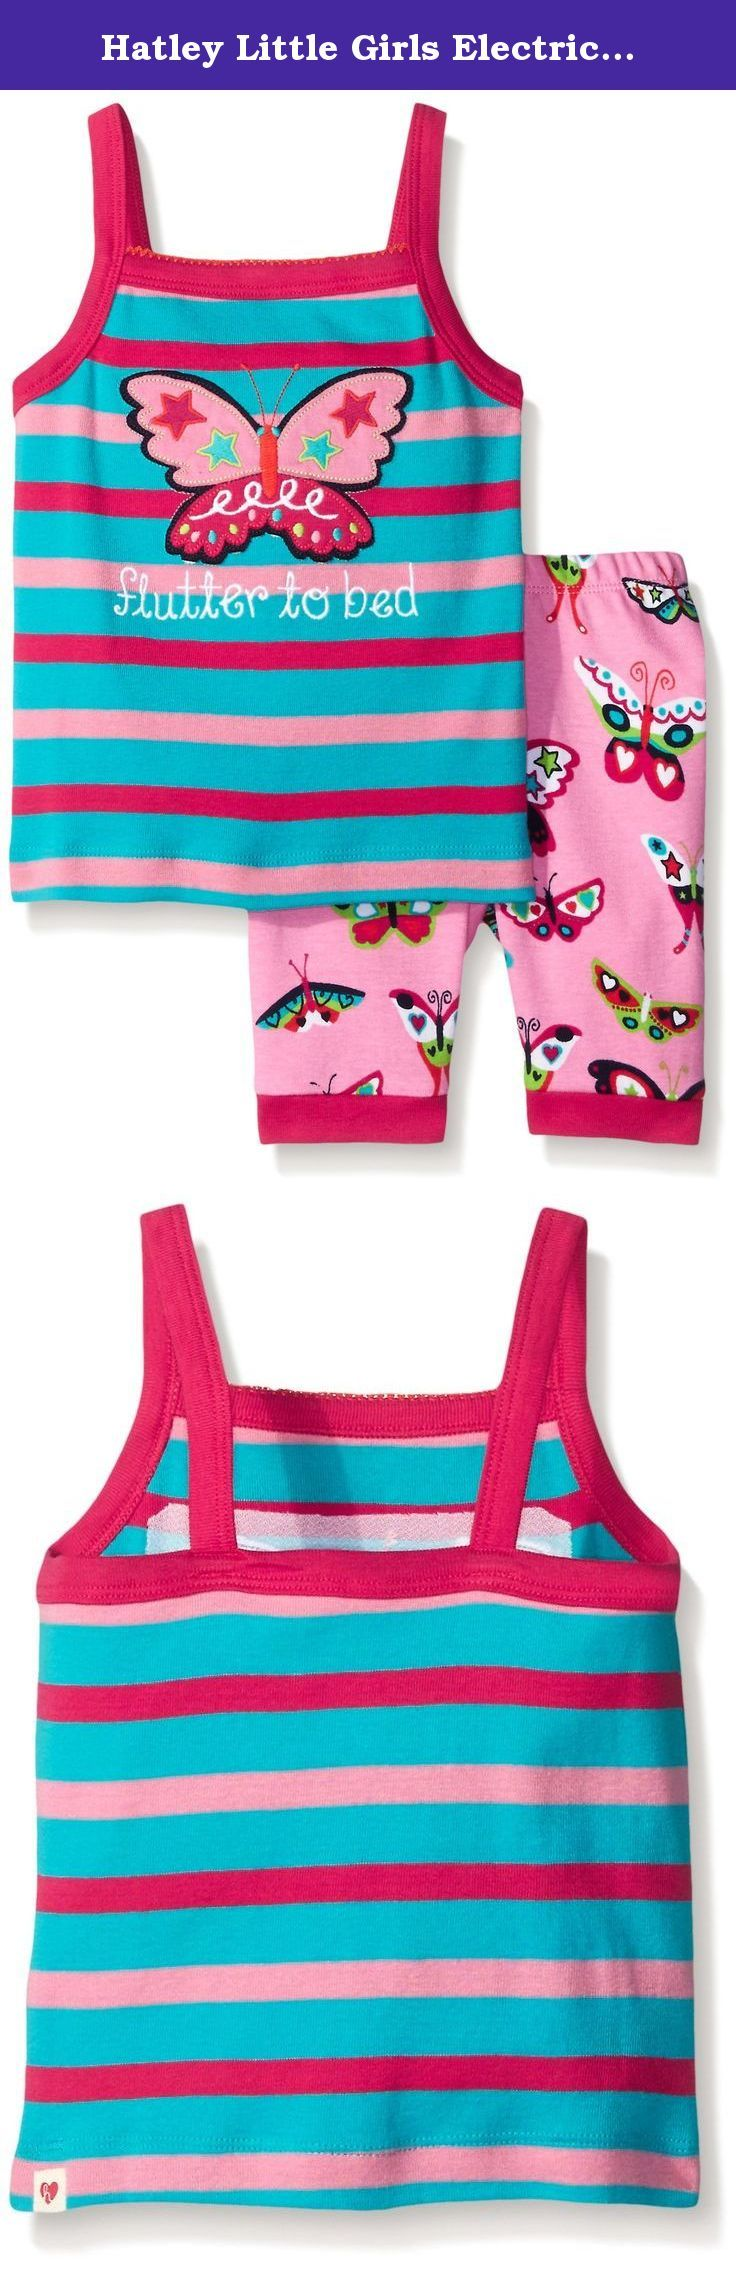 Hatley Little Girls Electric Butterflies Tank Pajama Set, Pink, 7. Let's face it bedtimes are tough. Between bath time, teeth brushing, stories, glasses of water and everything else necessary to send your little animal off to dreamland it can wear a parent out. Unfortunately, Hatley pajamas will not help with any of that. Sorry. However, they are made from super soft cotton with fun designs that she'll hopefully love to wear and that will last wash after wash. We leave the rest up to you....